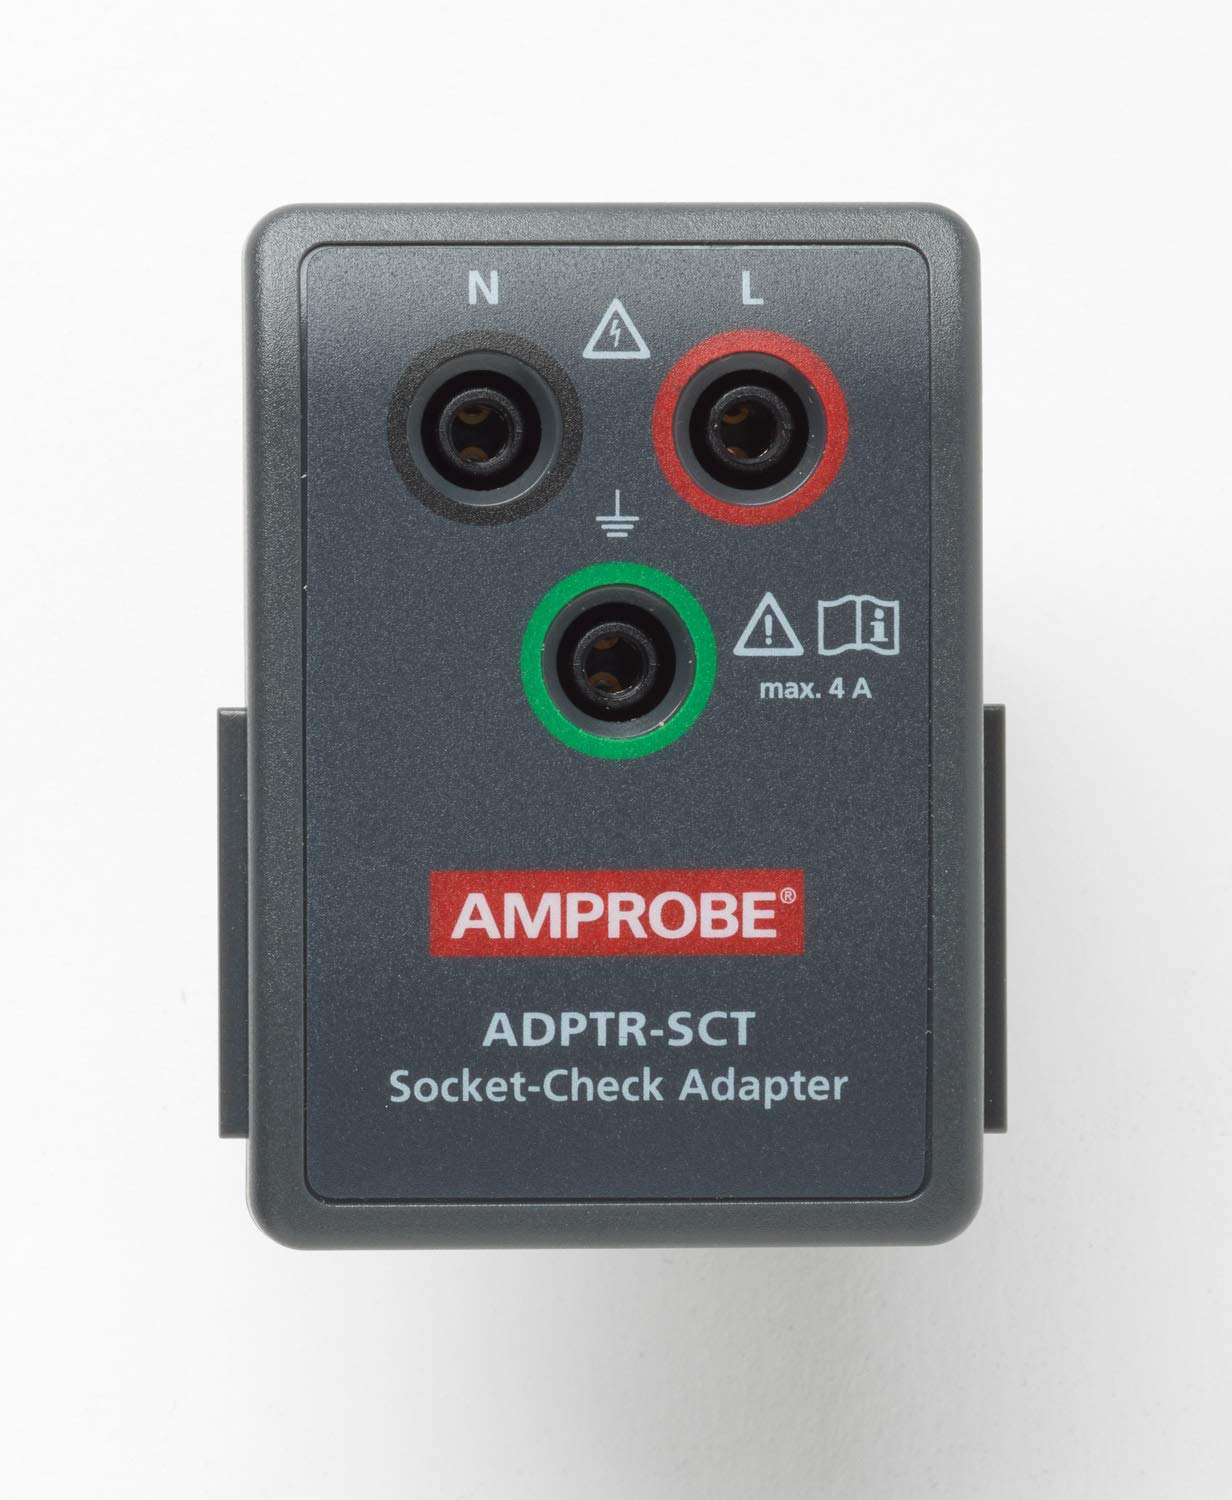 Amprobe ADPTR-SCT Socket-Check Adapter by Amprobe